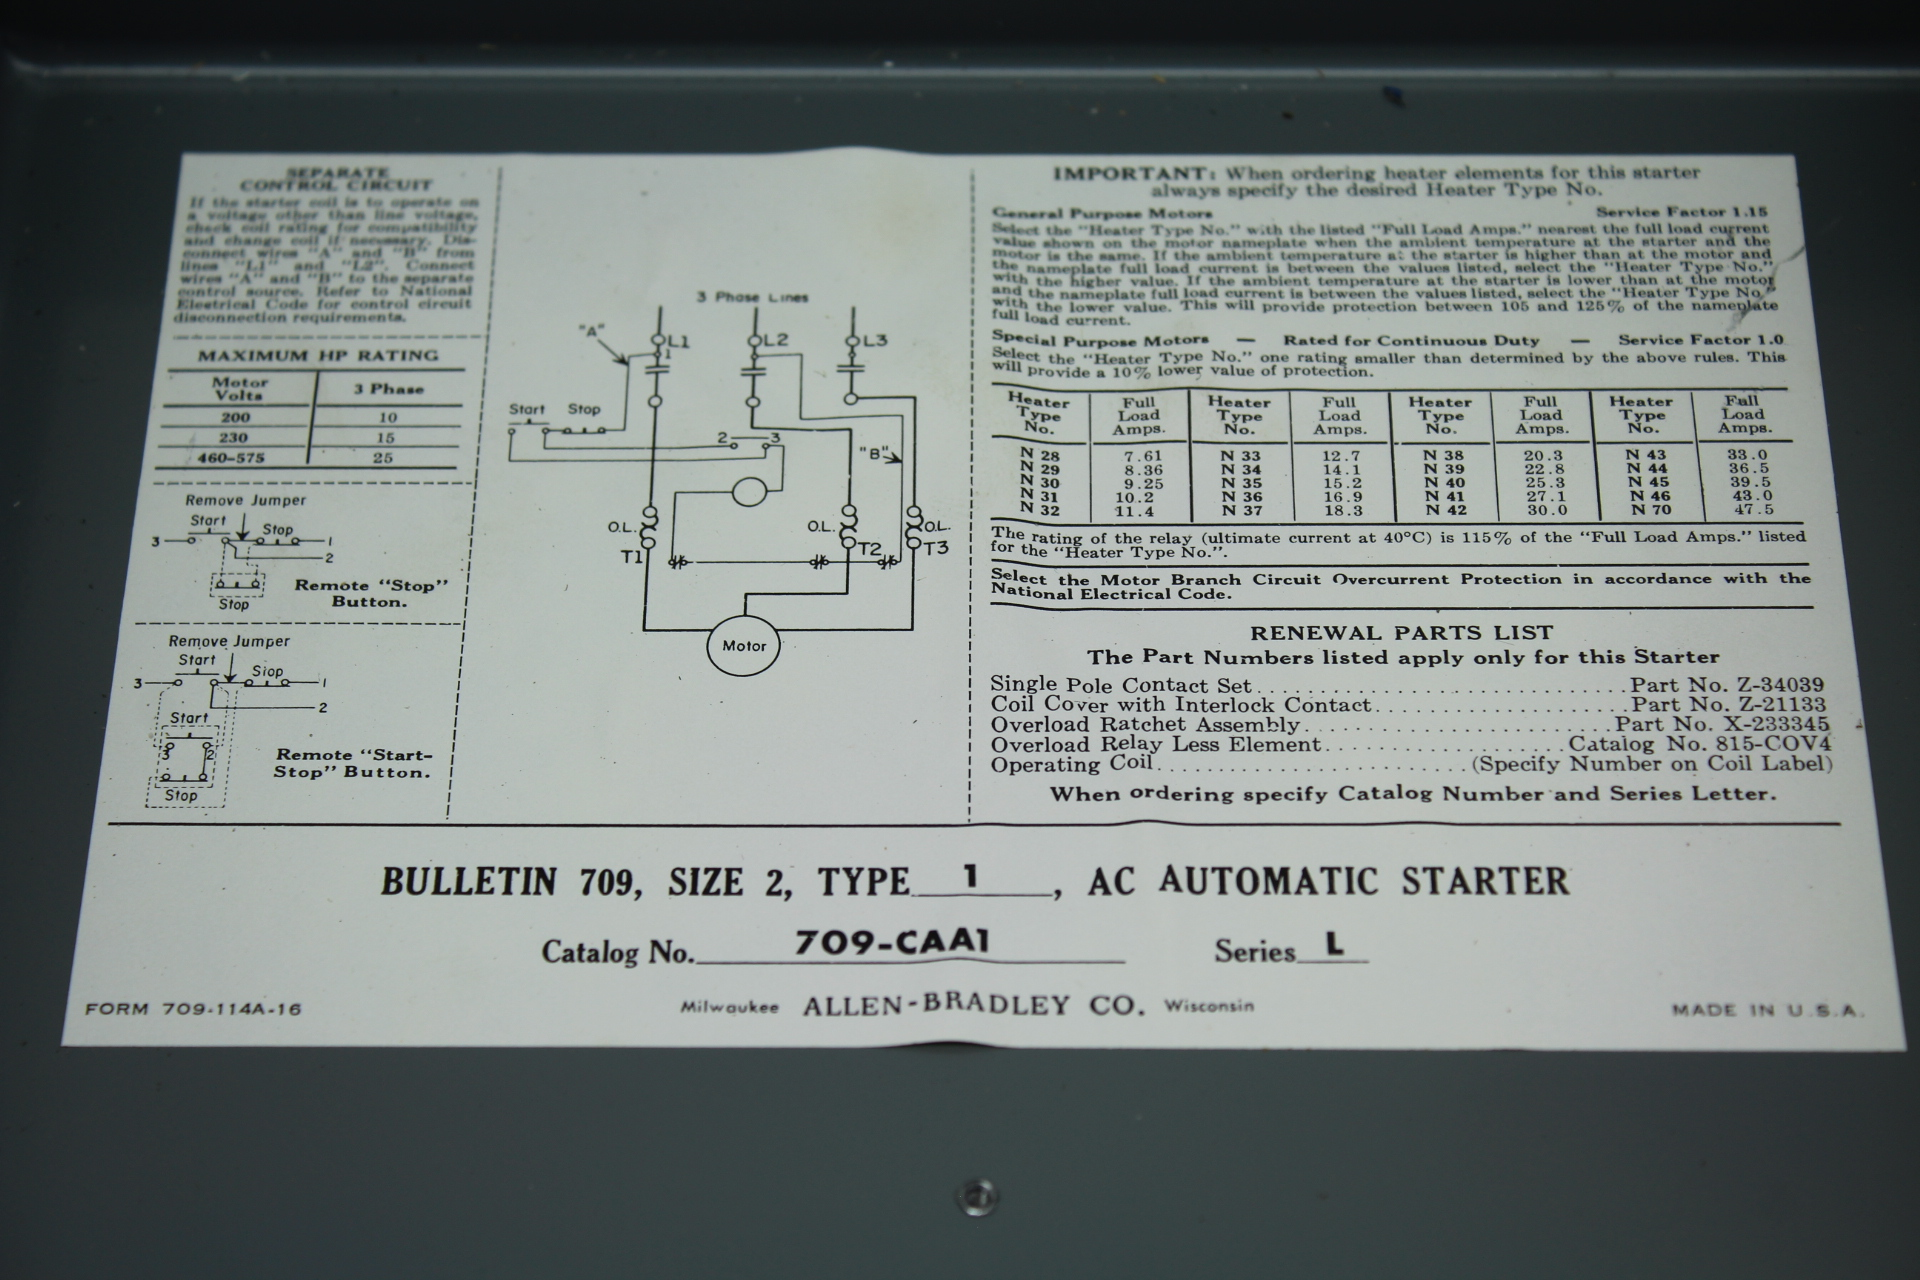 Allen-dley Bulletin 709, Size 2, Type 1, AC Automatic Starter CAT  on